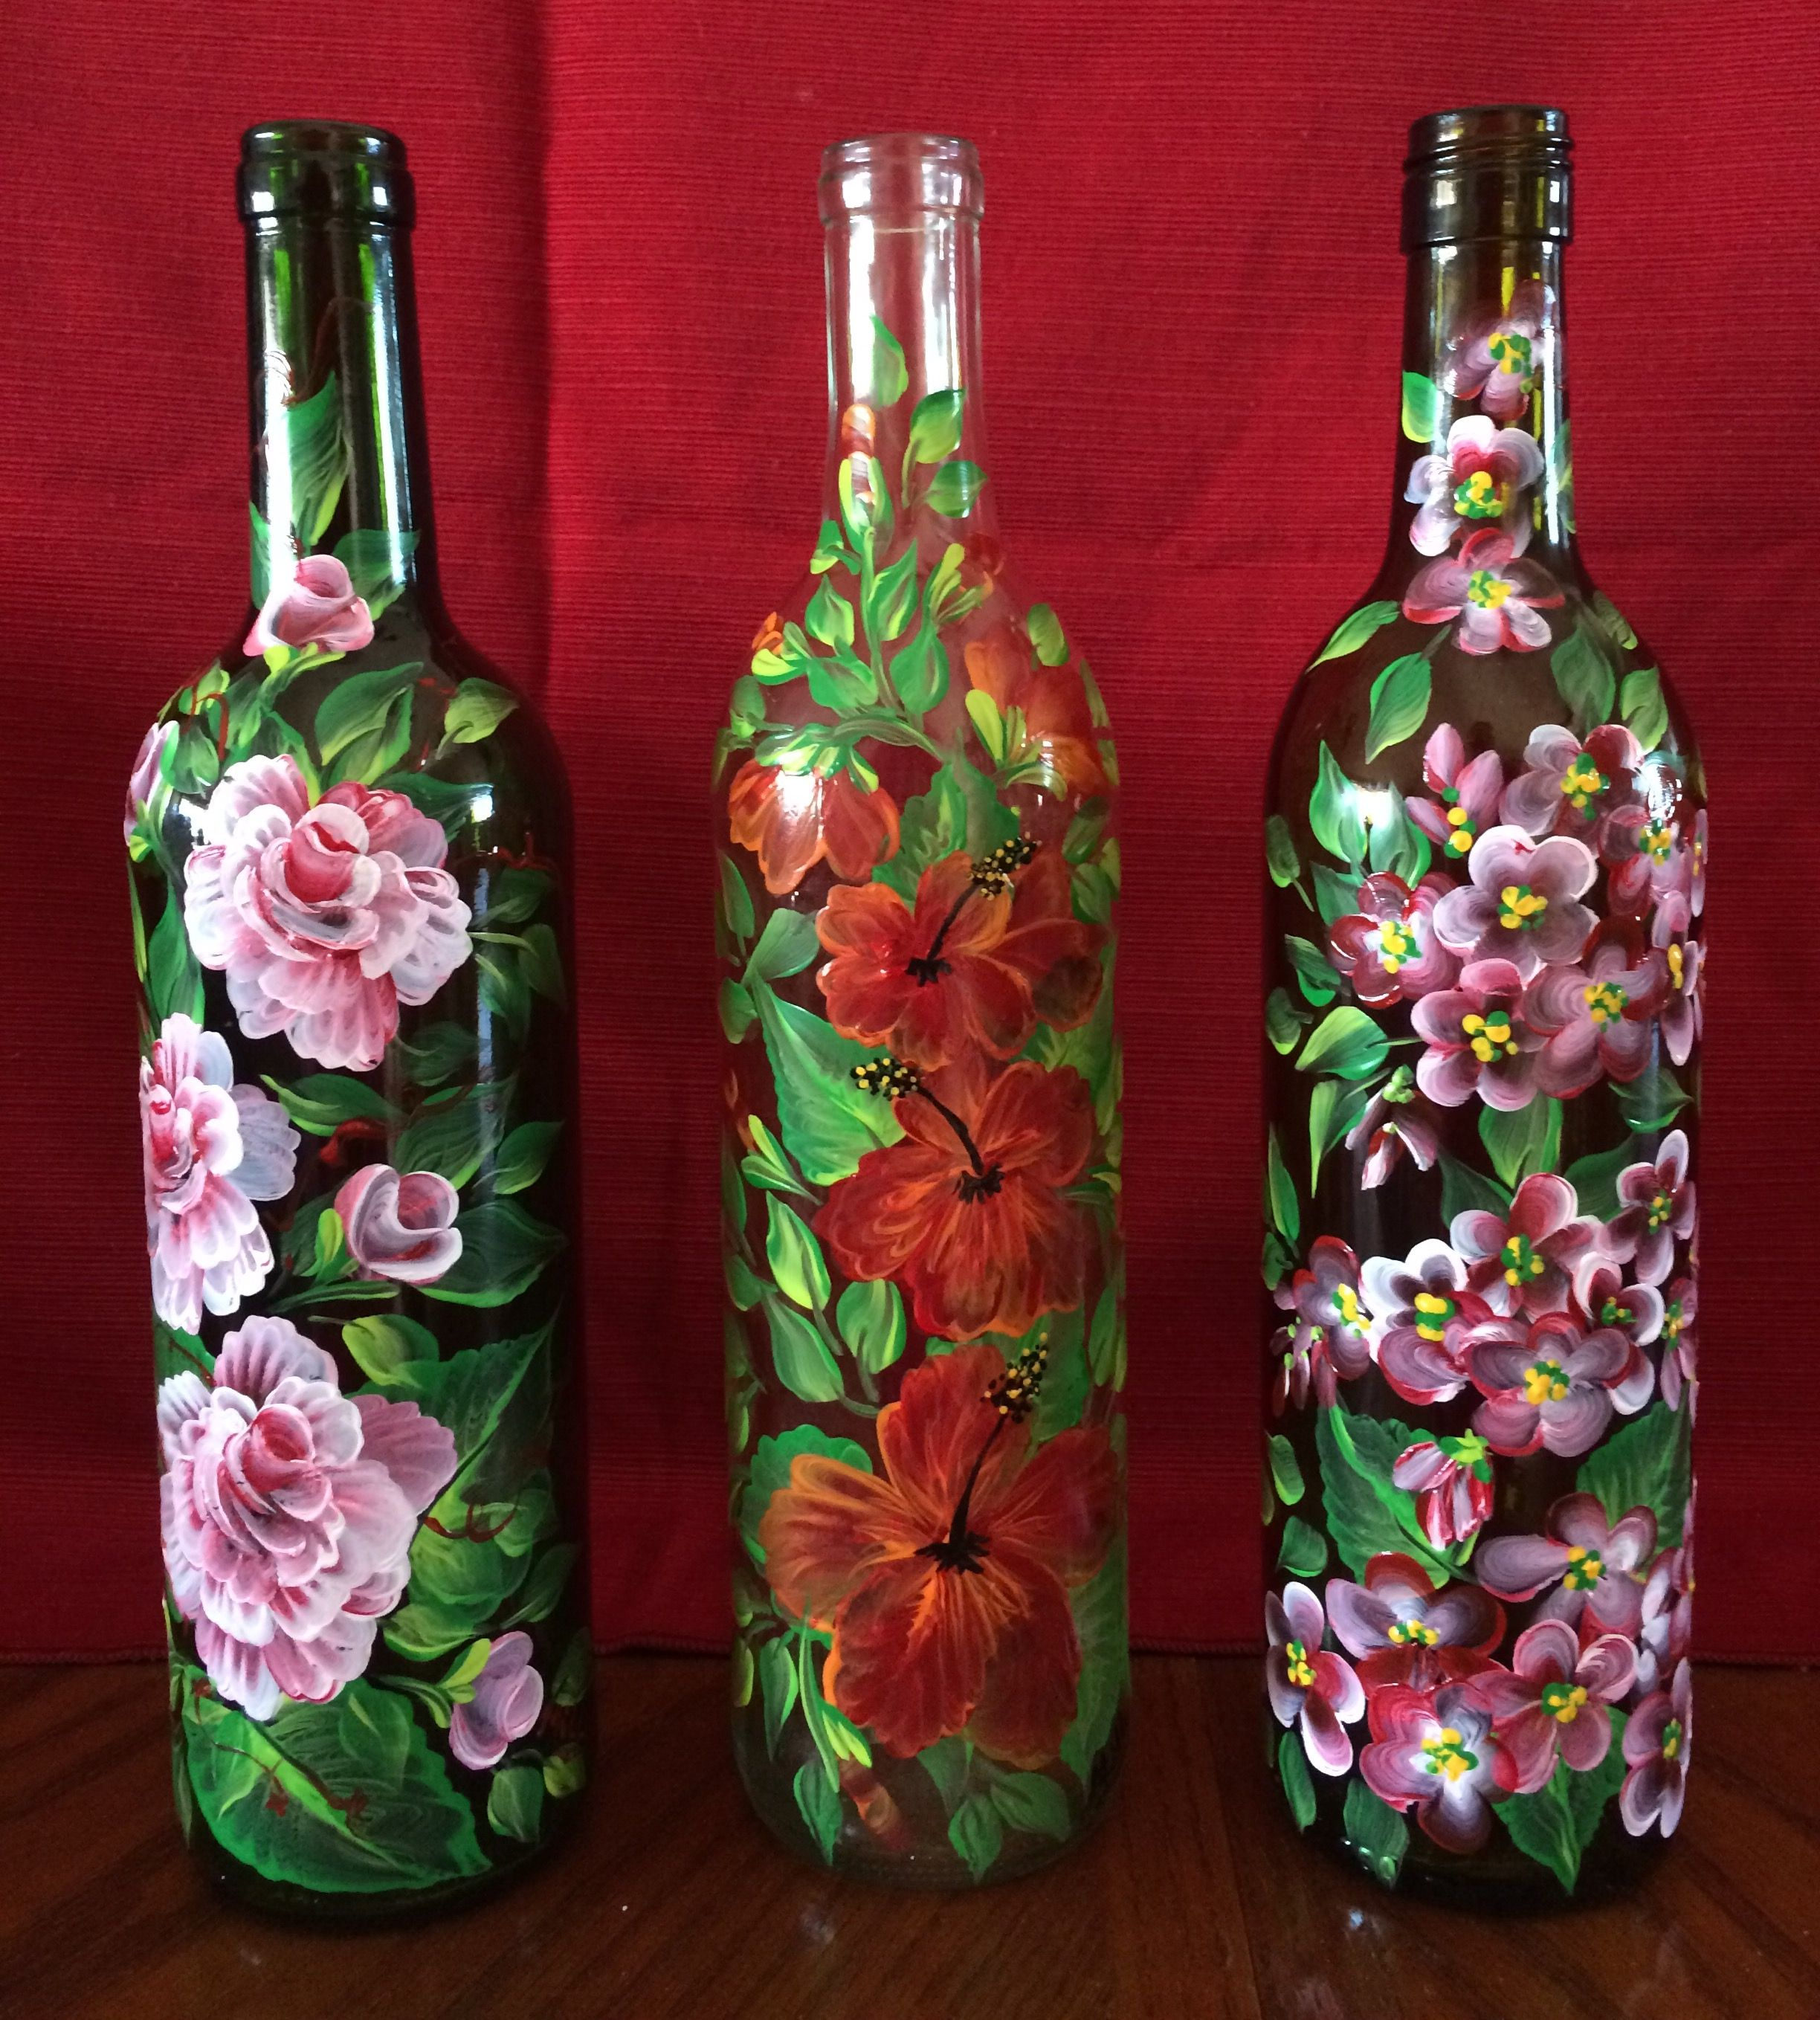 Pin By Milly Johnson On Wine Bottles Glass Bottle Crafts Wine Glass Art Wine Bottle Crafts